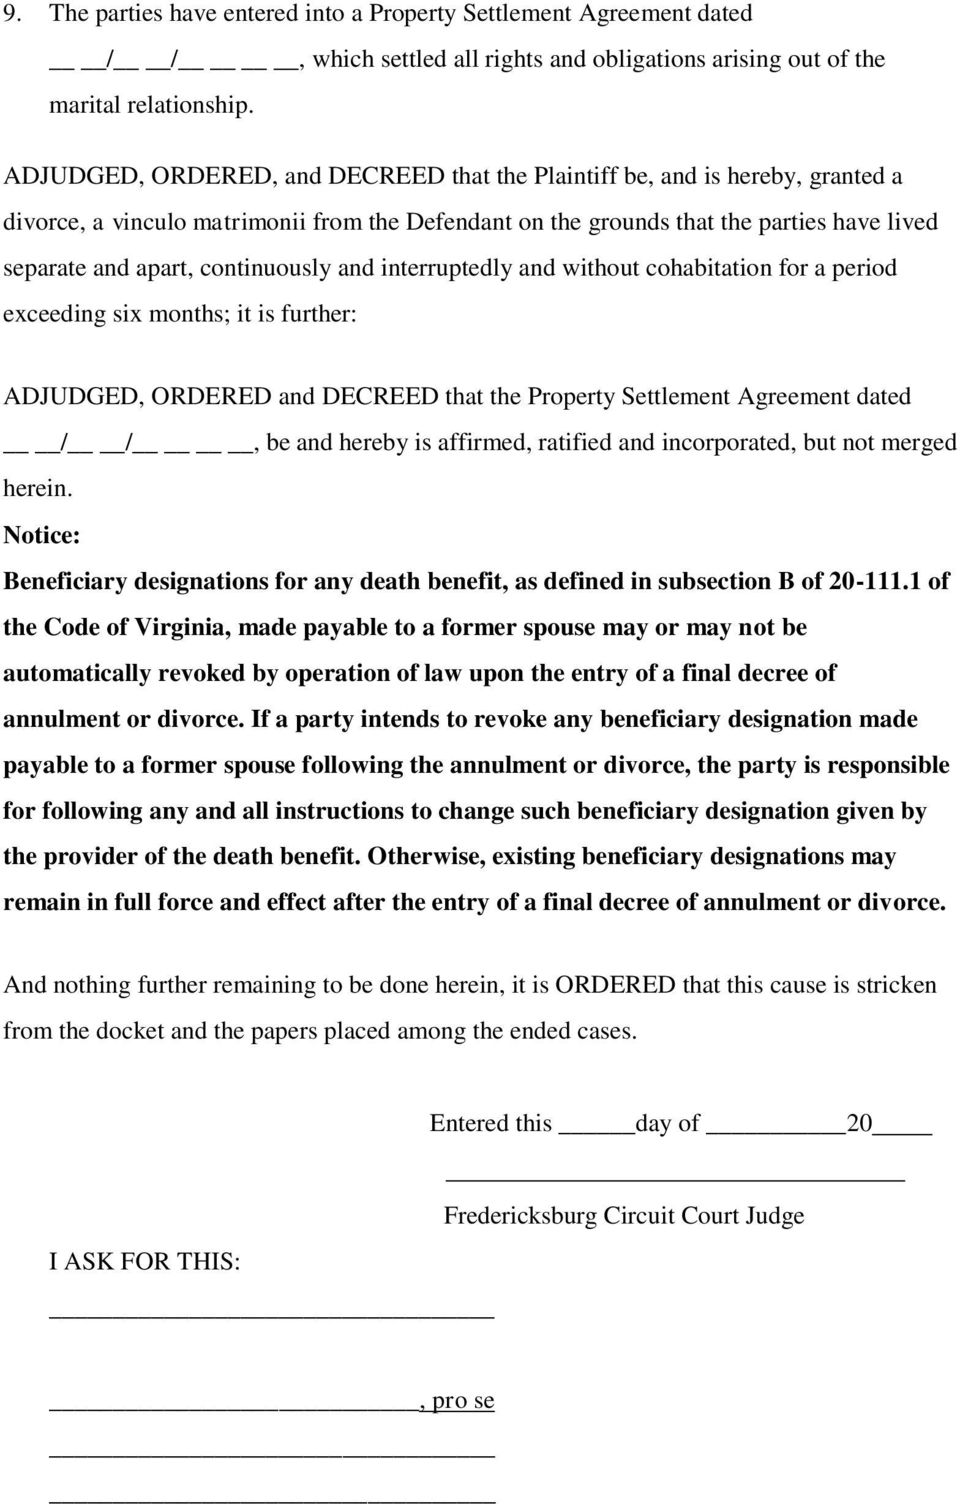 continuously and interruptedly and without cohabitation for a period exceeding six months; it is further: ADJUDGED, ORDERED and DECREED that the Property Settlement Agreement dated / /, be and hereby